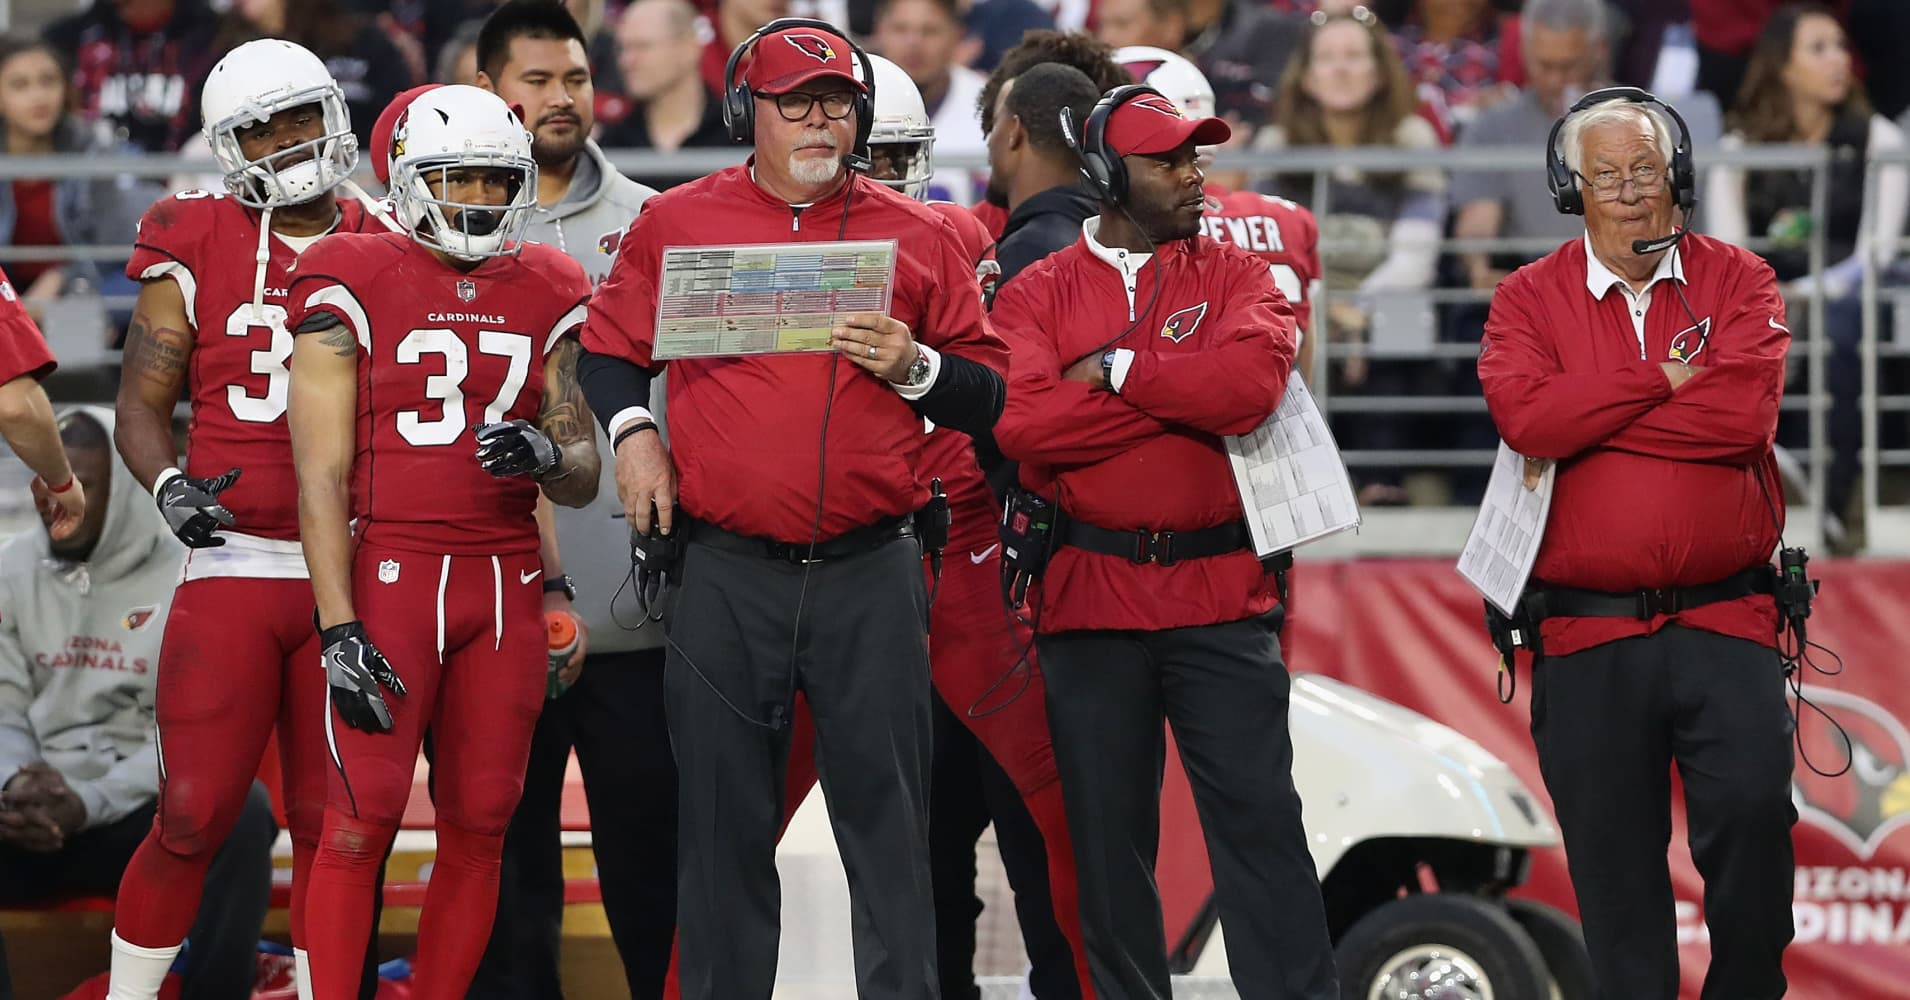 Head coach Bruce Arians (C) of the Arizona Cardinals watches from the sidelines during the second half of the NFL game against the New York Giants at the University of Phoenix Stadium.